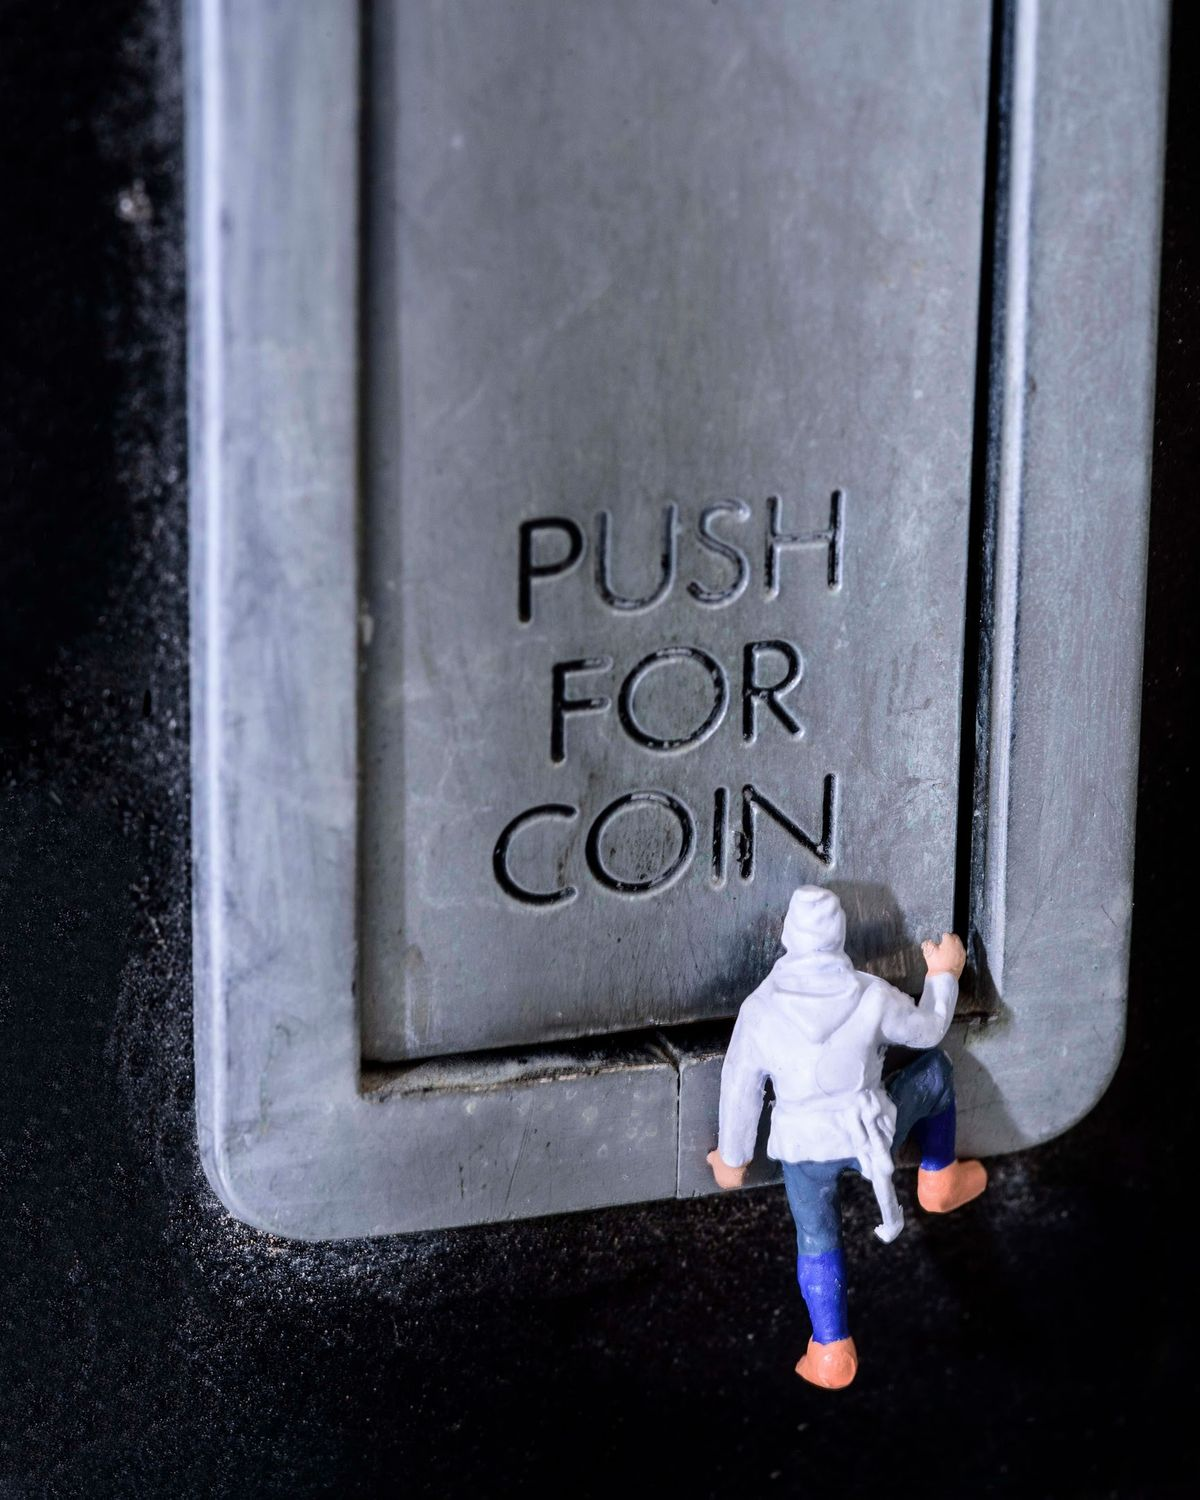 Alicia_Wells_Push_for_Coin_Austin_Art_Local_Art.jpg